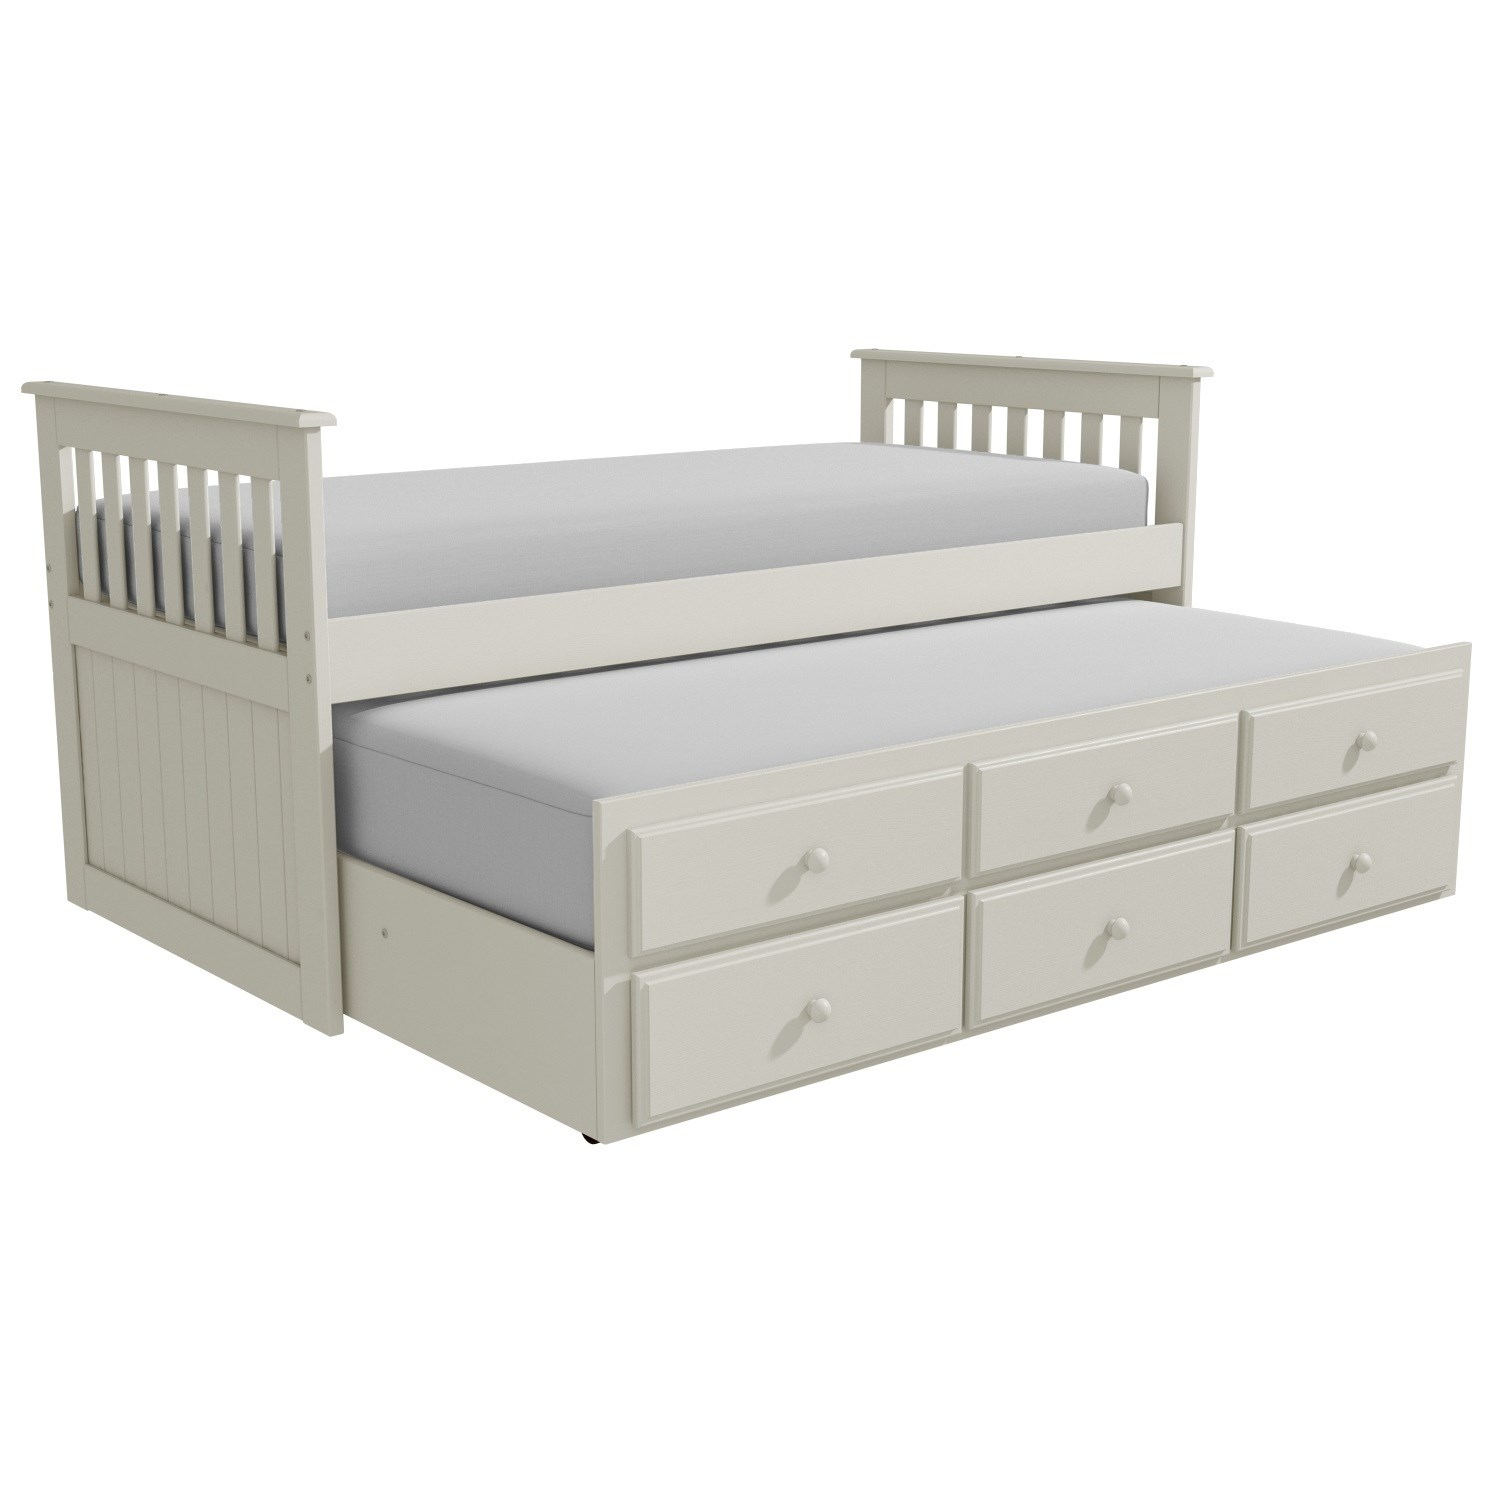 Cream guest bed captains bed trundle bed 3 storage for Single bed with drawers and mattress